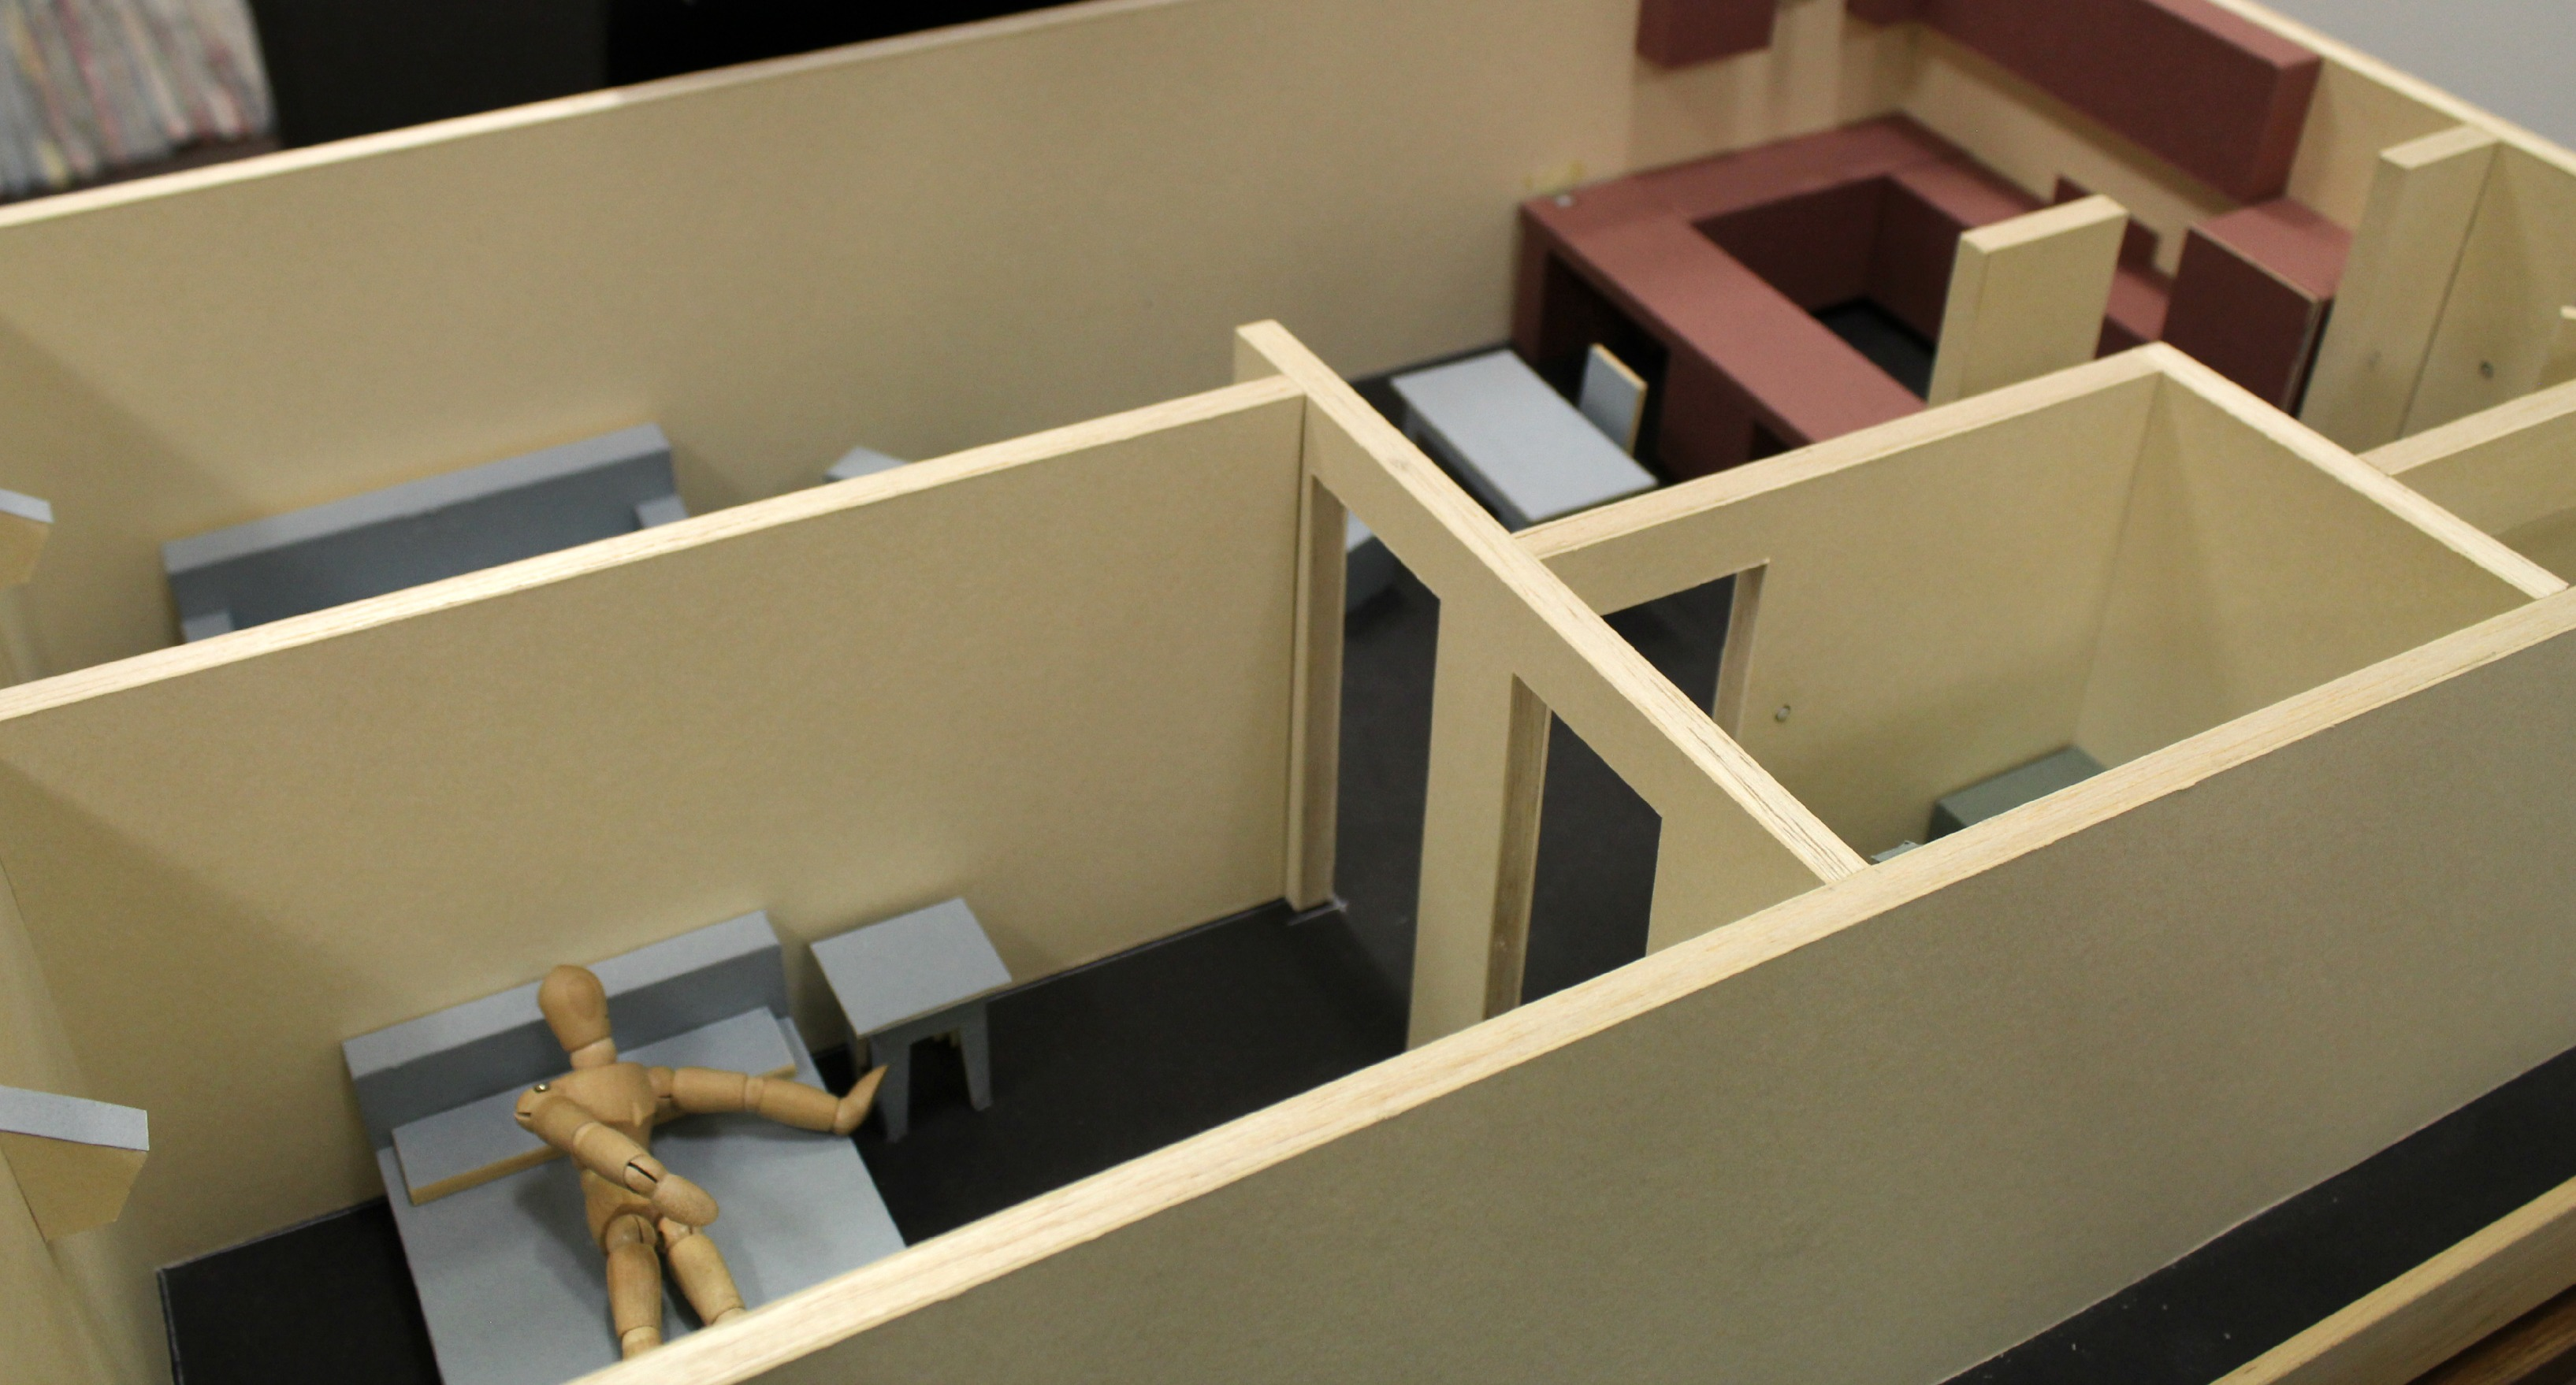 A Smart Condo model used to demonstrate the deployment of universal design.